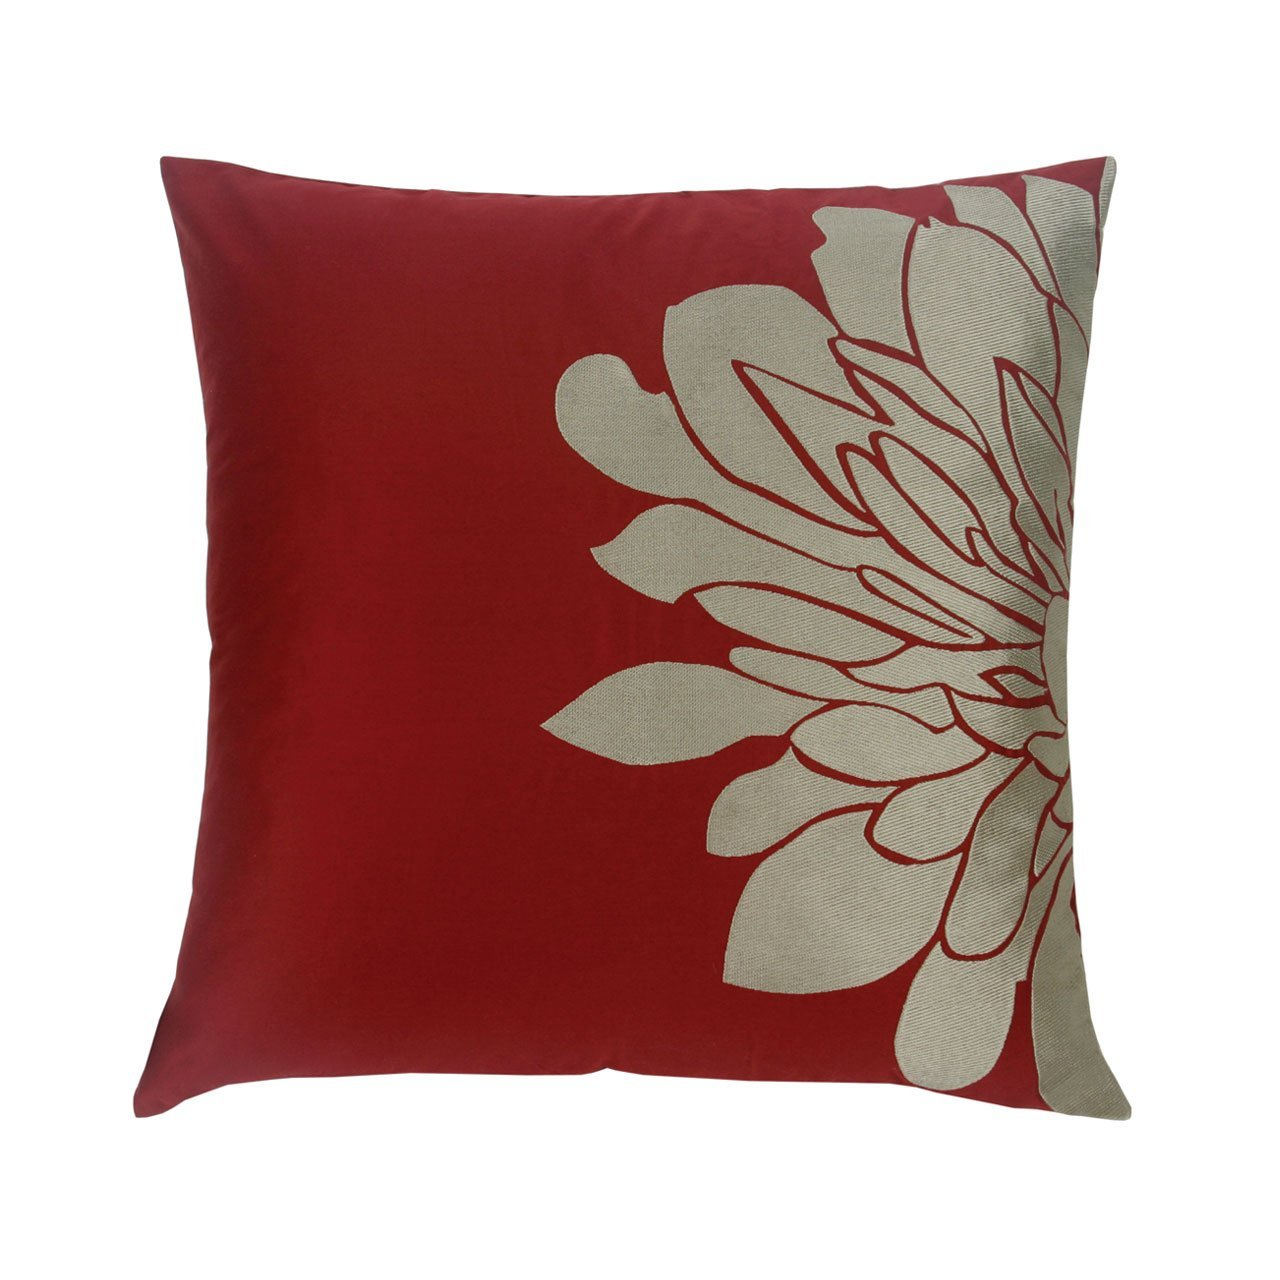 Return to home 3 unexpected places to find throw pillows - What is a throw pillow ...